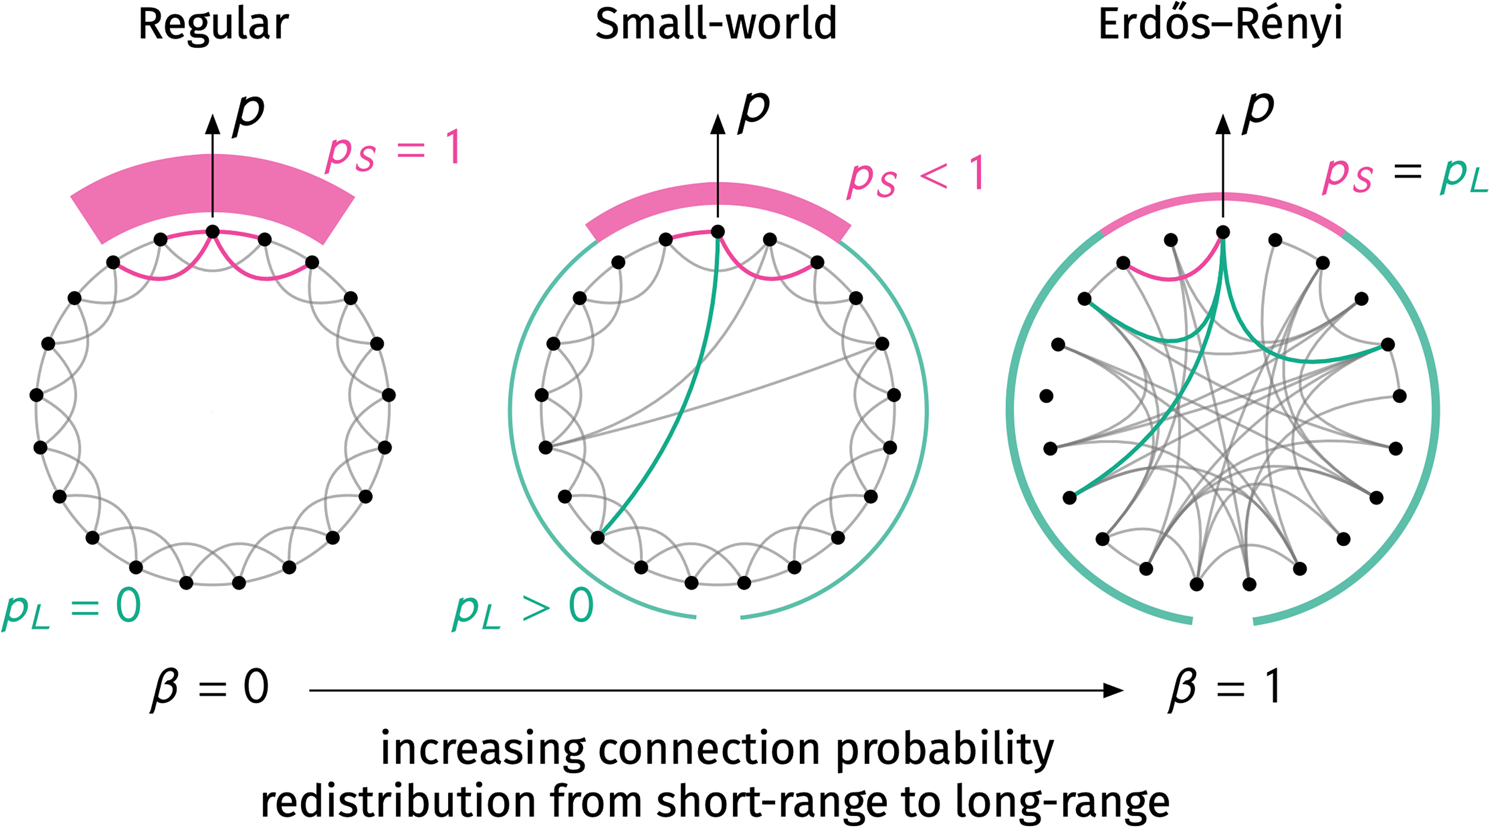 Generalization of the small-world effect on a model approaching the Er